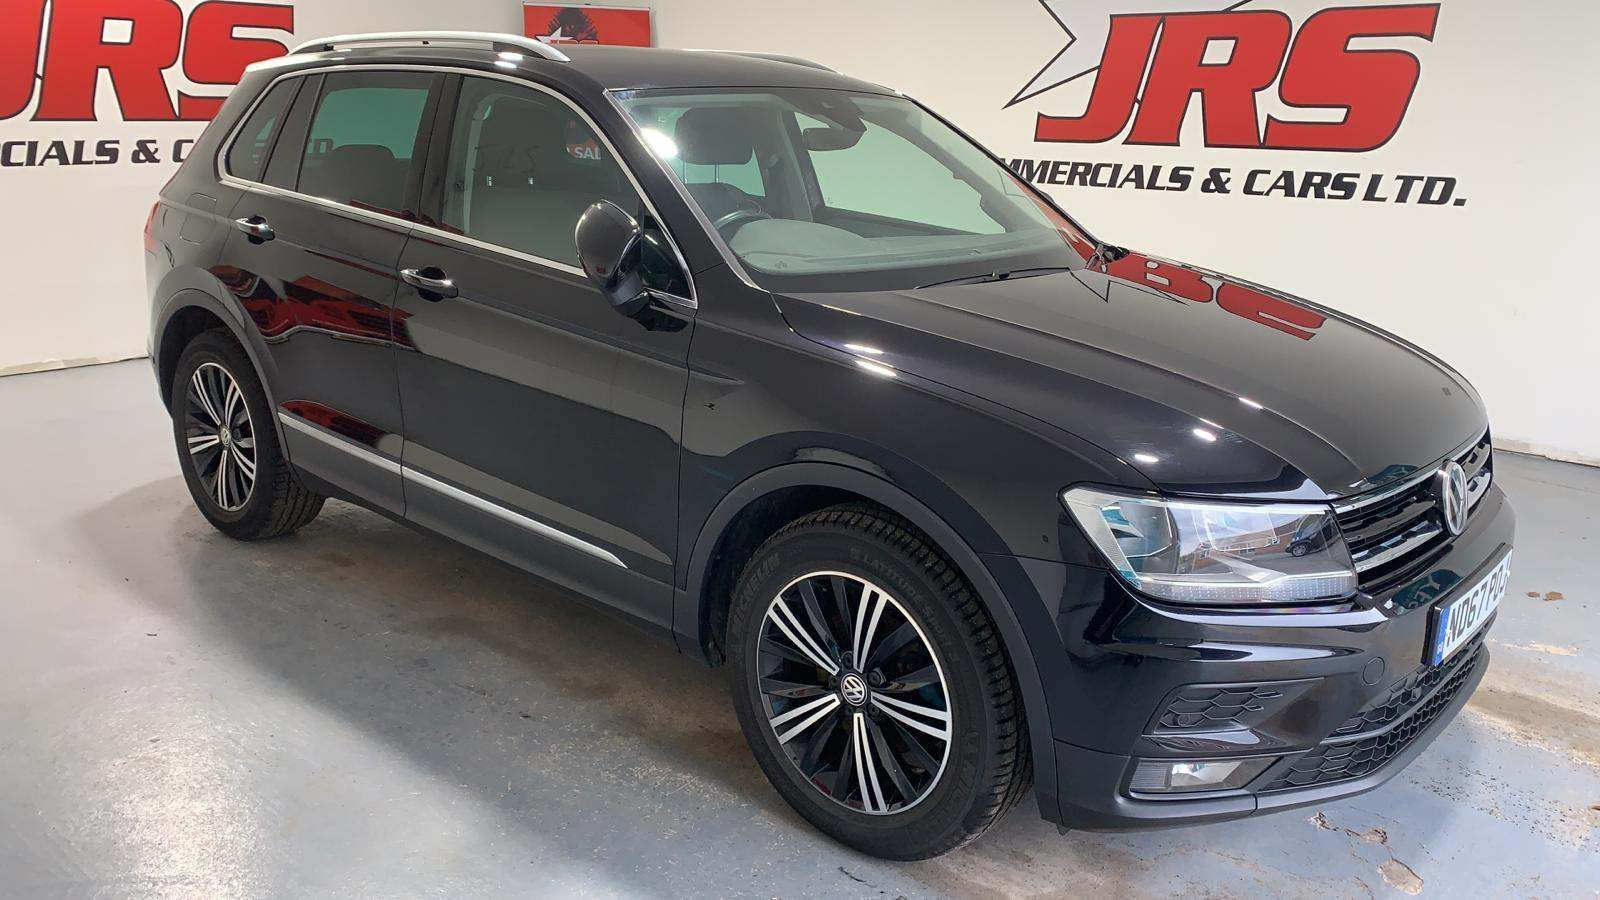 2018 VOLKSWAGEN Tiguan 2.0 TDI SE (s/s) Diesel Manual **Deep Black Pearl** – J R S Commercials And Cars Dungannon full